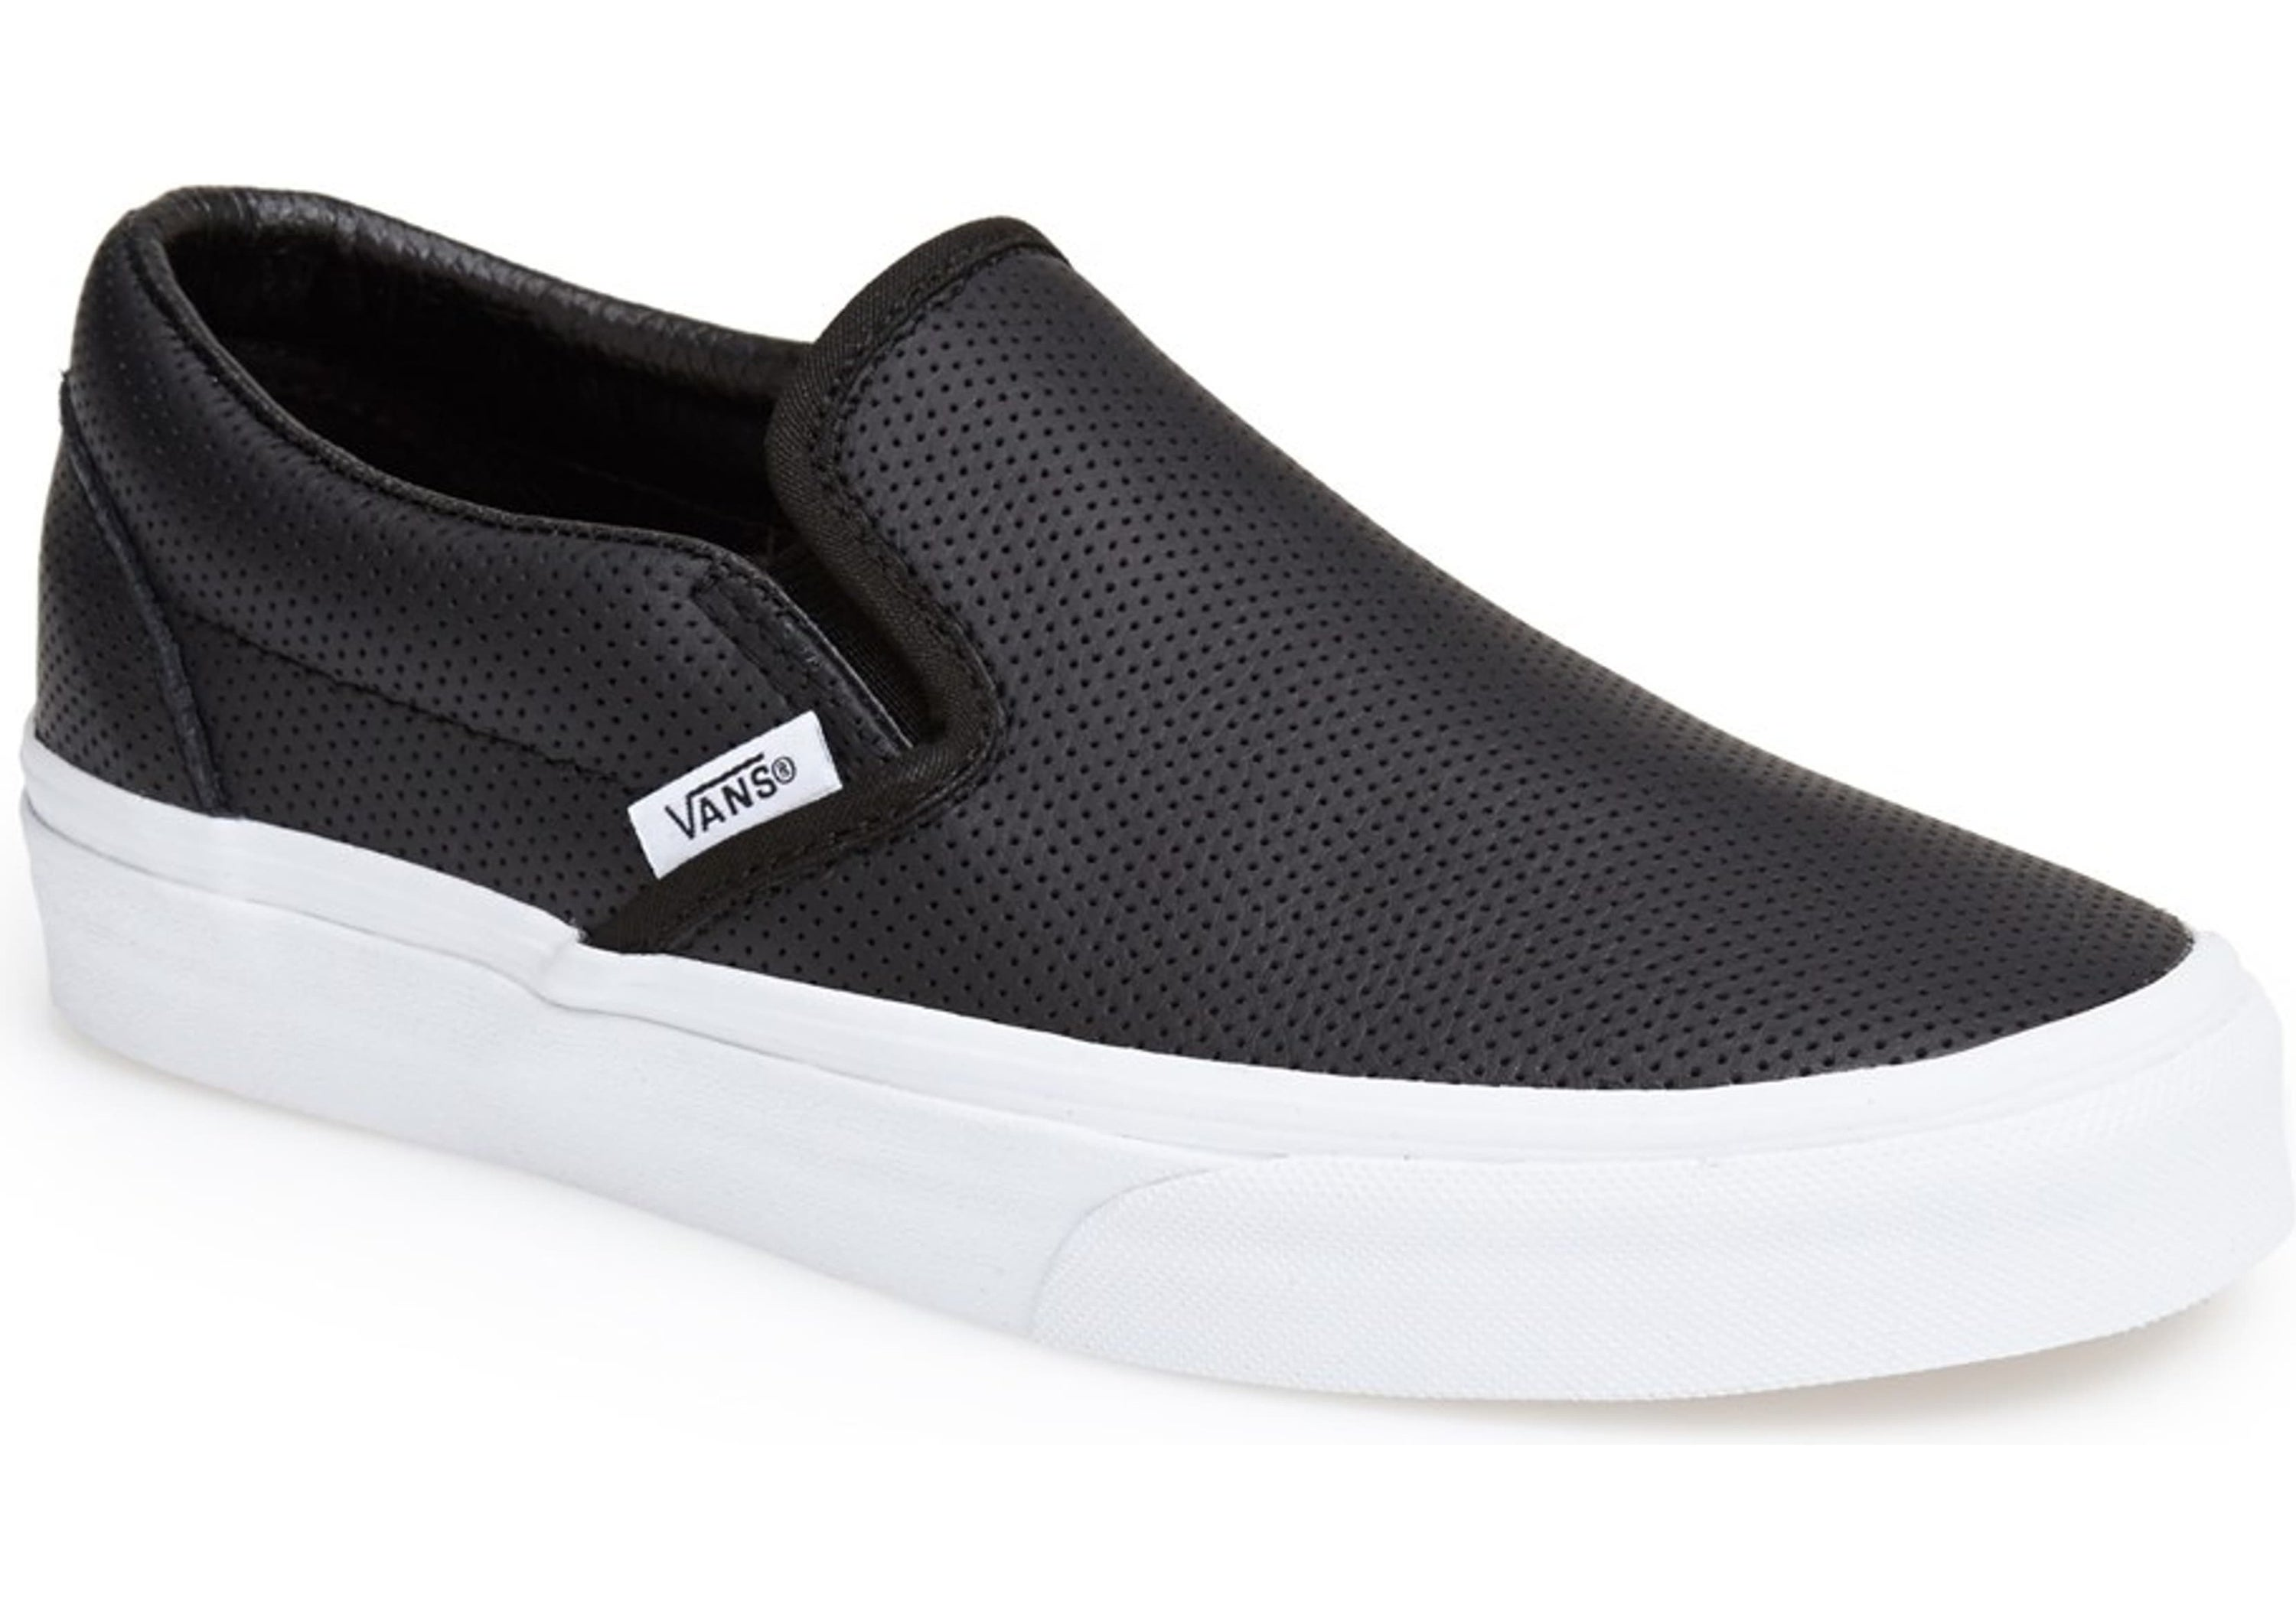 black slip-on sneakers with white sole